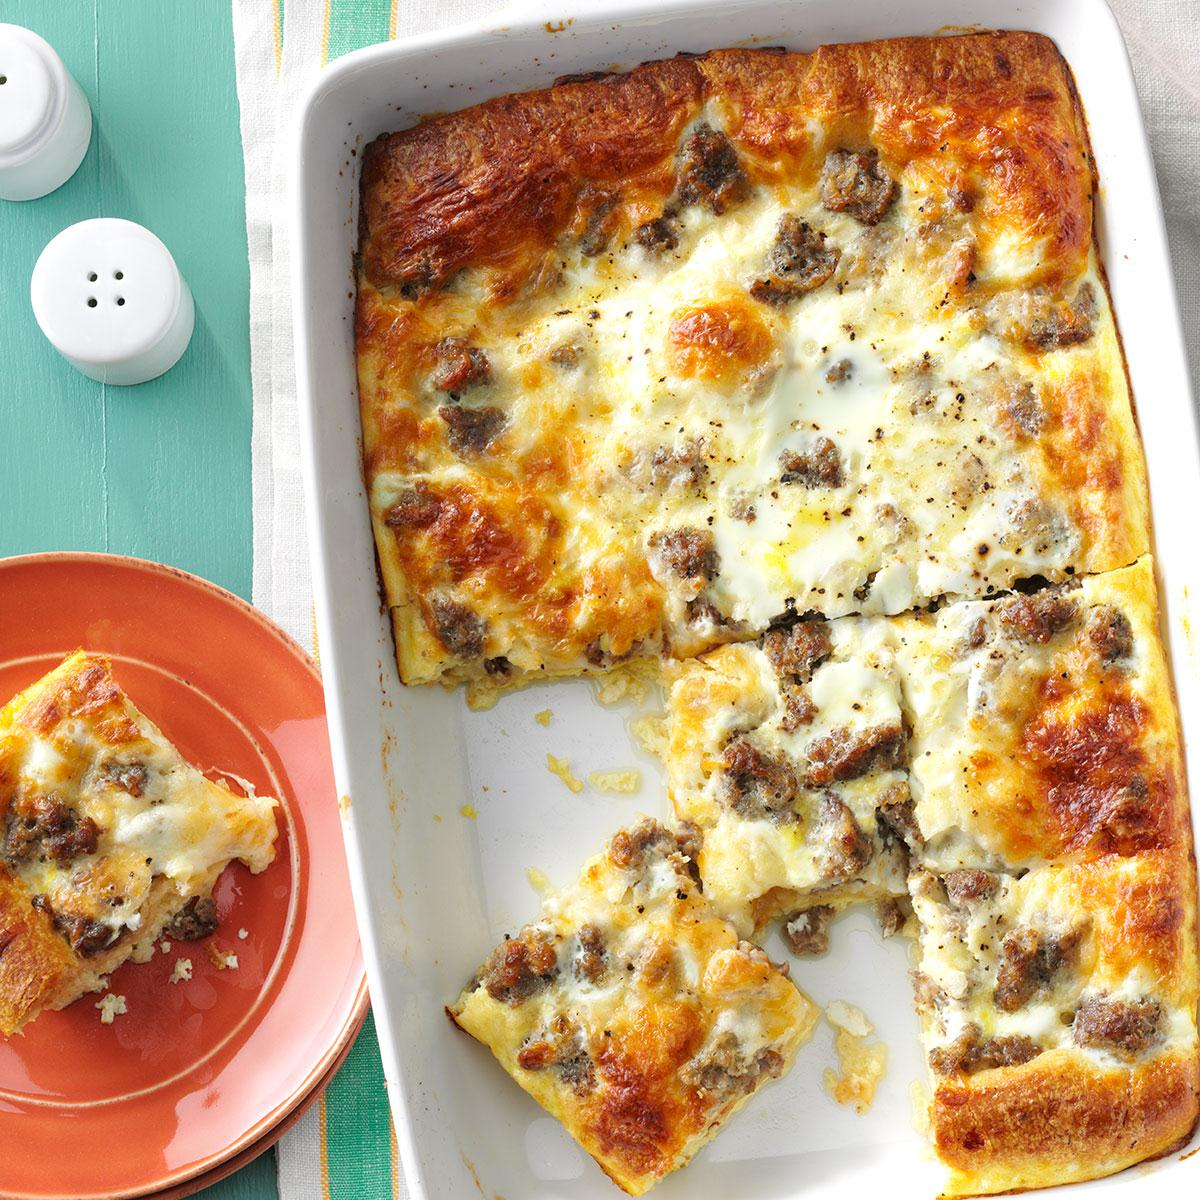 Do Ahead Egg And Sausage Bake: Sausage & Crescent Roll Casserole Recipe